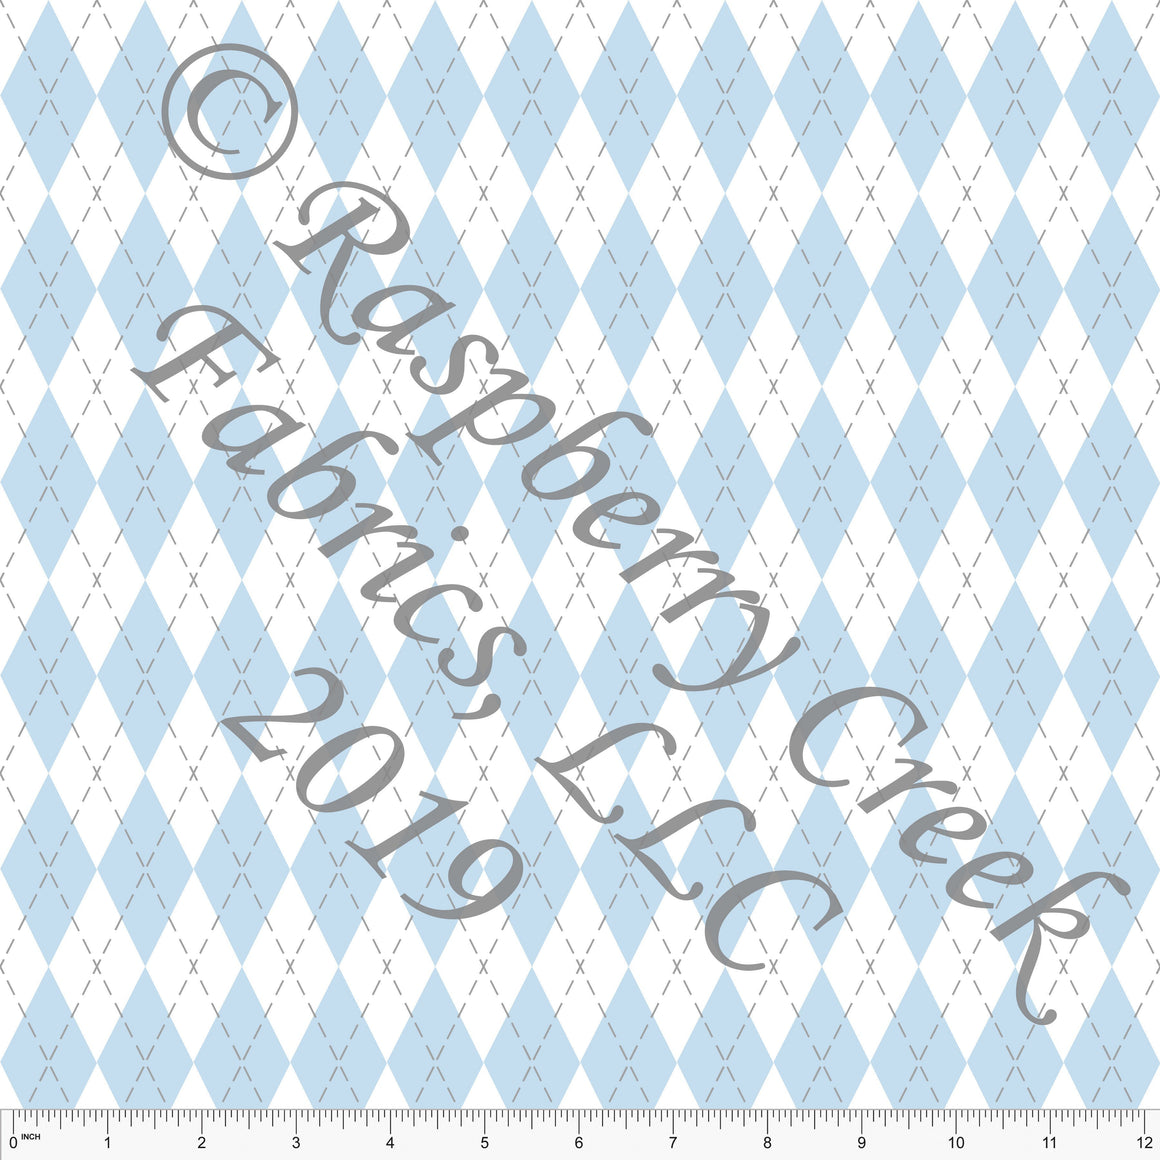 Light Blue and Grey Geometric Argyle 4 Way Stretch FRENCH TERRY Knit, Easter By McKenzie Powell for CLUB Fabrics - Raspberry Creek Fabrics